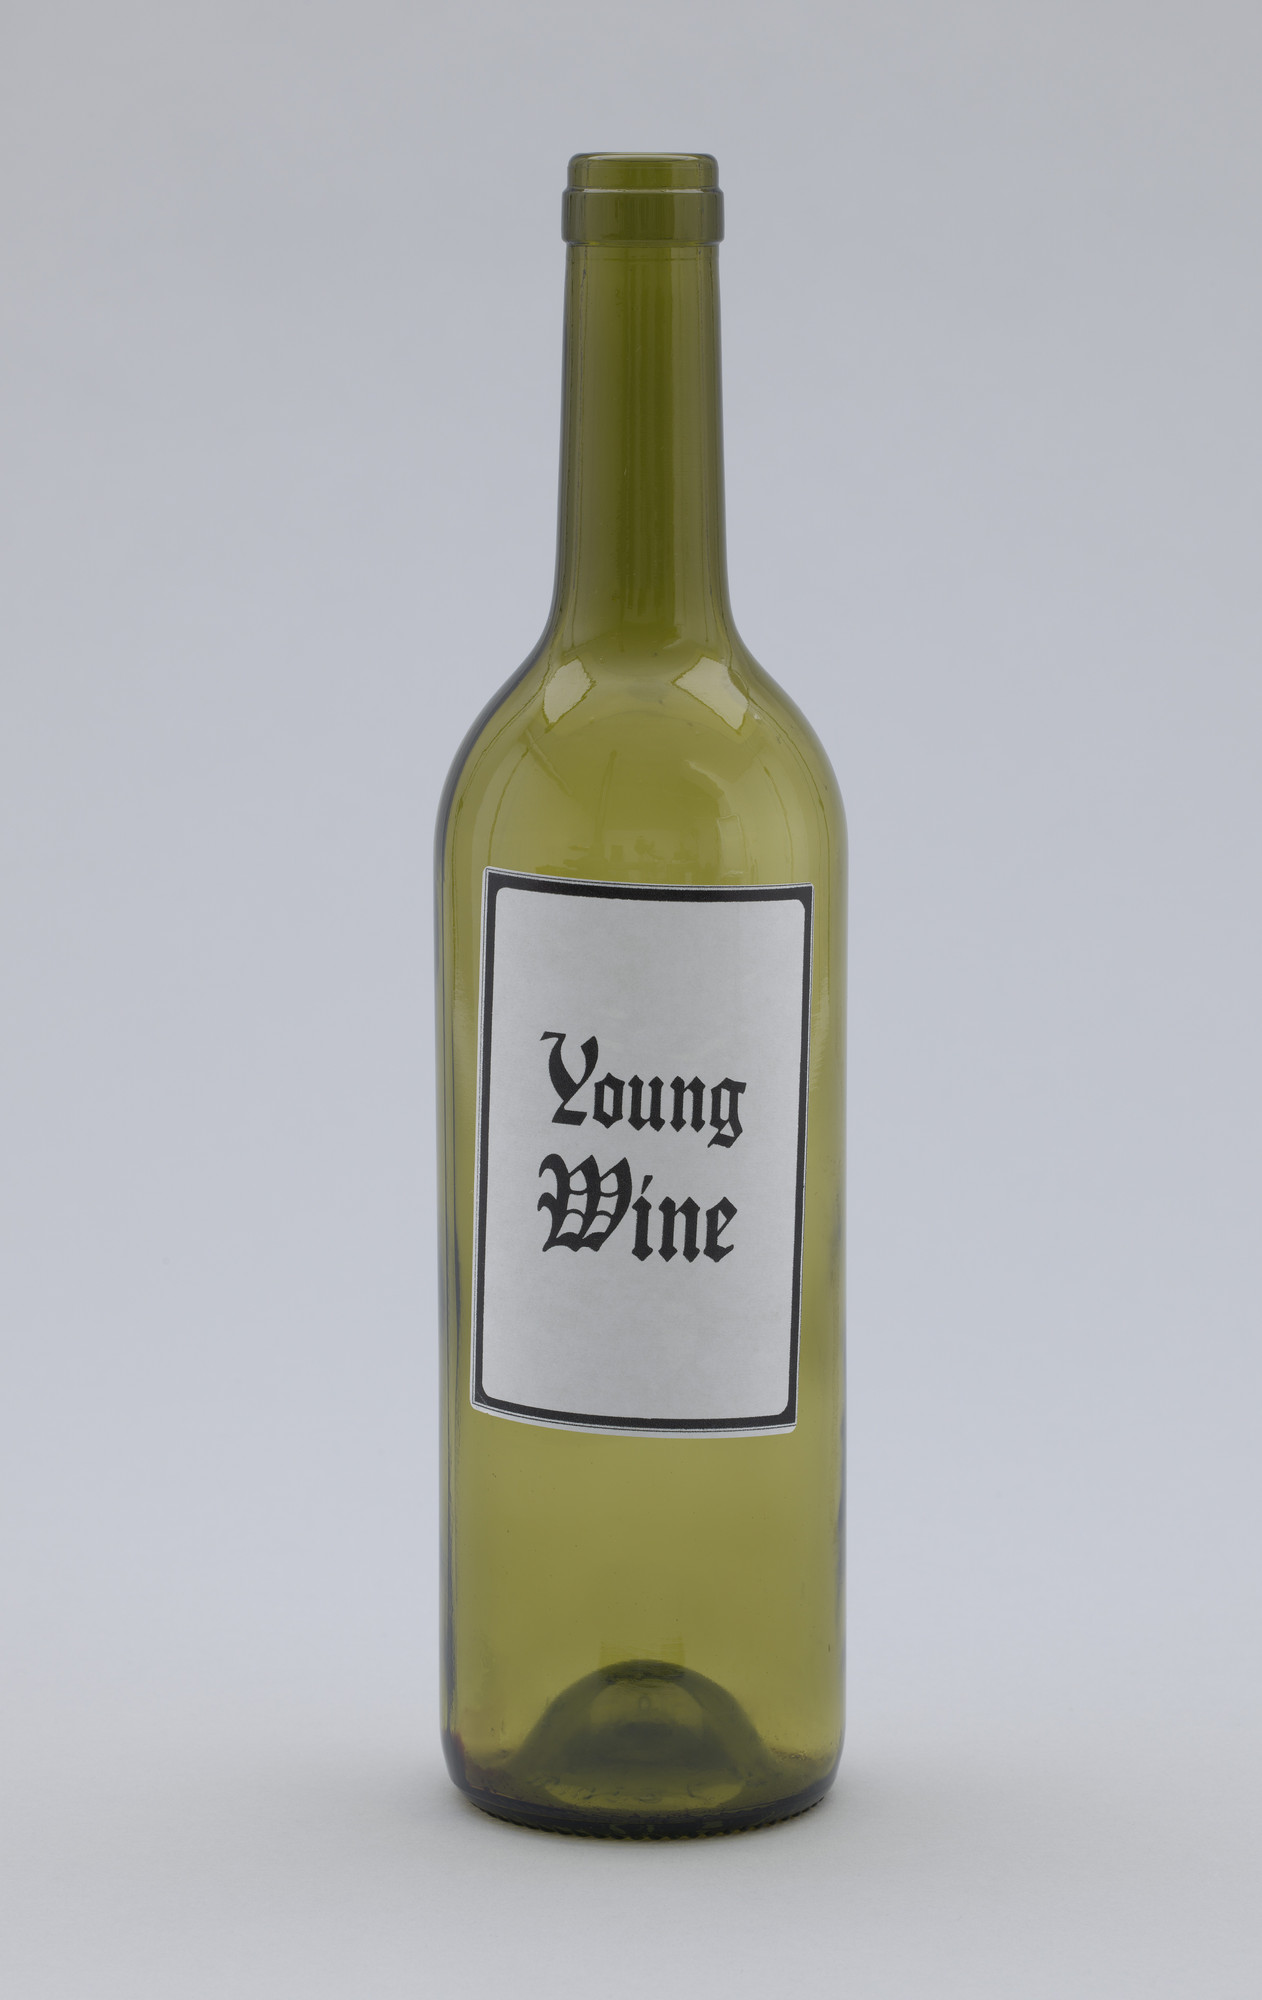 Fiona Banner. The Exquisite Corpe Will Drink the Young Wine. 2012